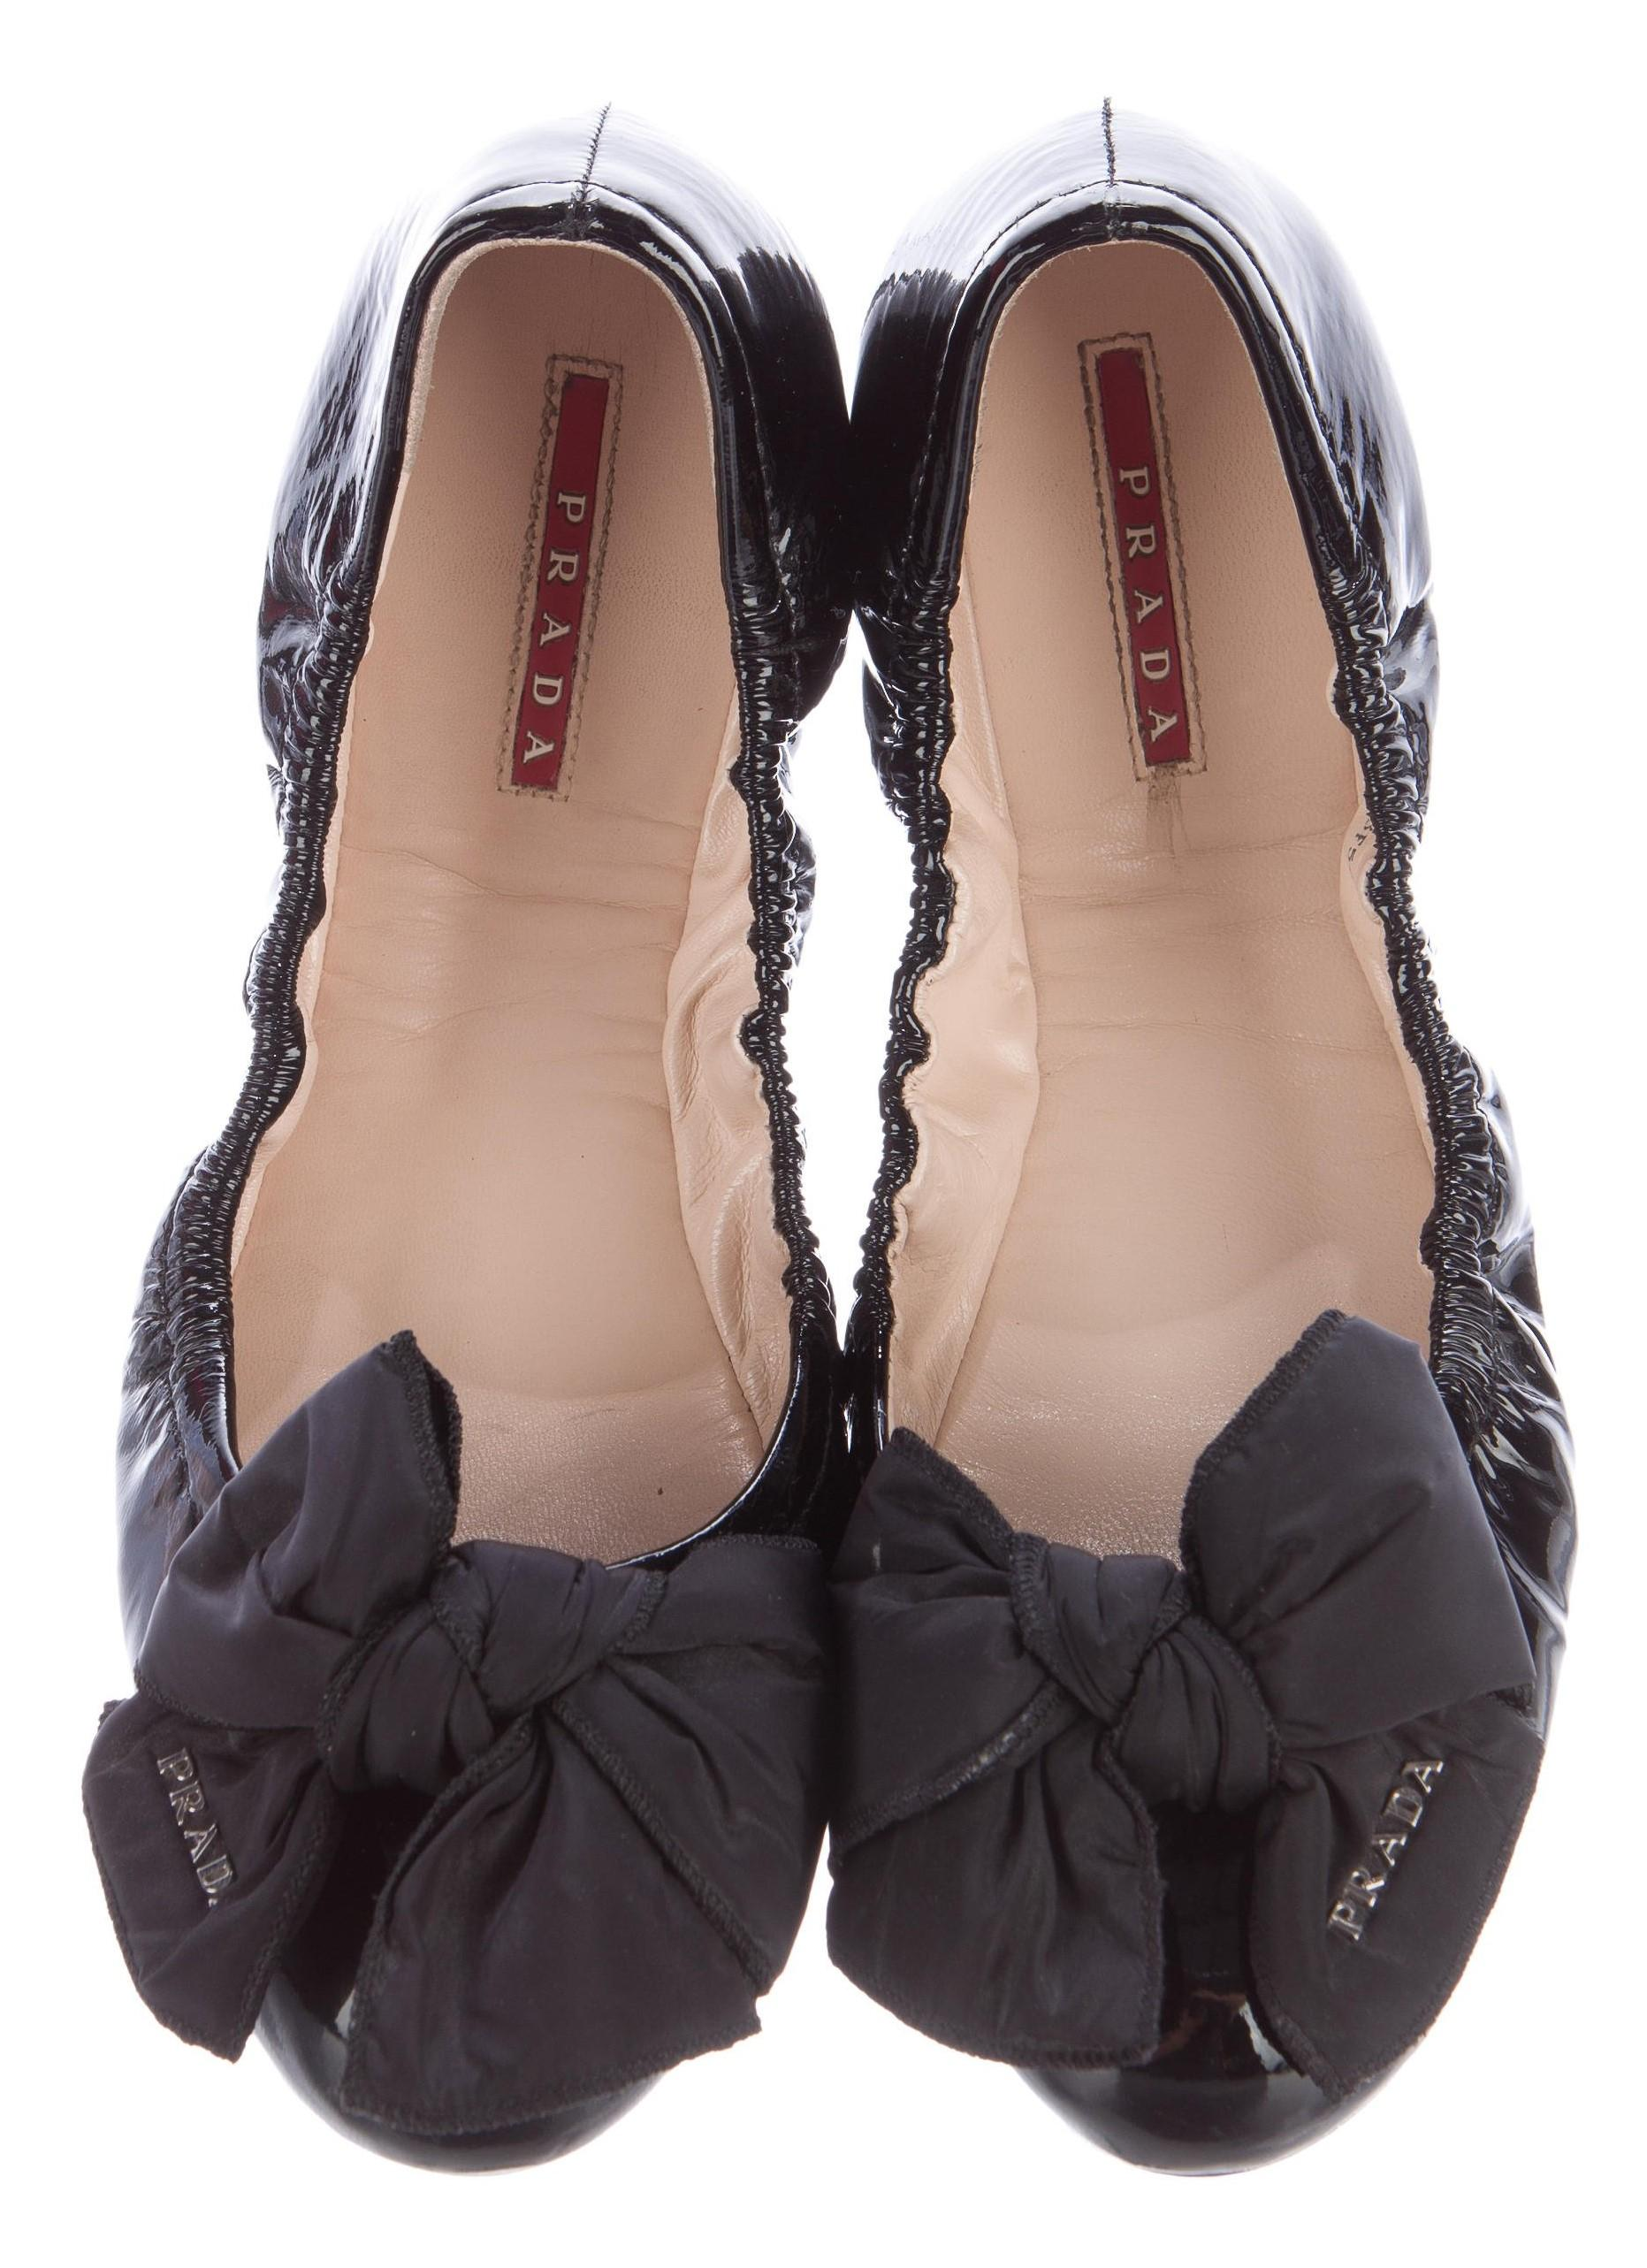 Prada Sport Patent Leather Round-Toe Mules free shipping collections free shipping limited edition cheap price top quality top quality for sale comfortable MyuKm